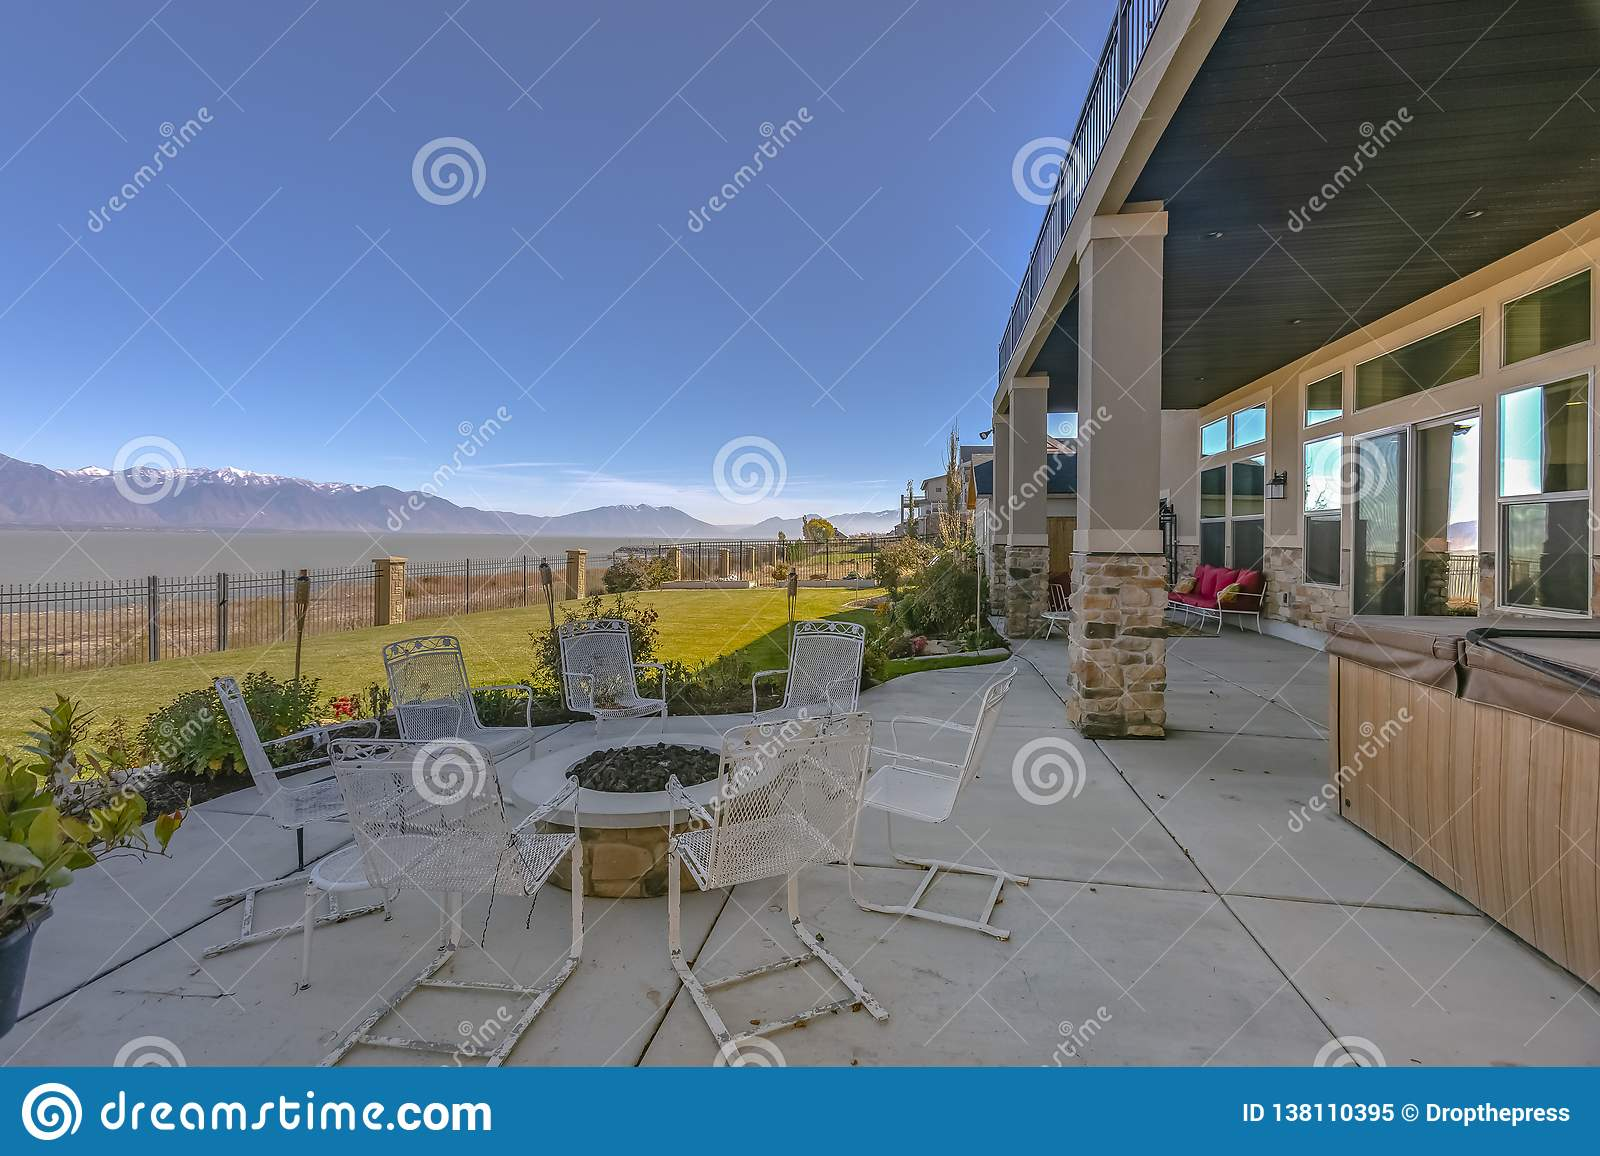 Patio with chairs around a circular fire pit